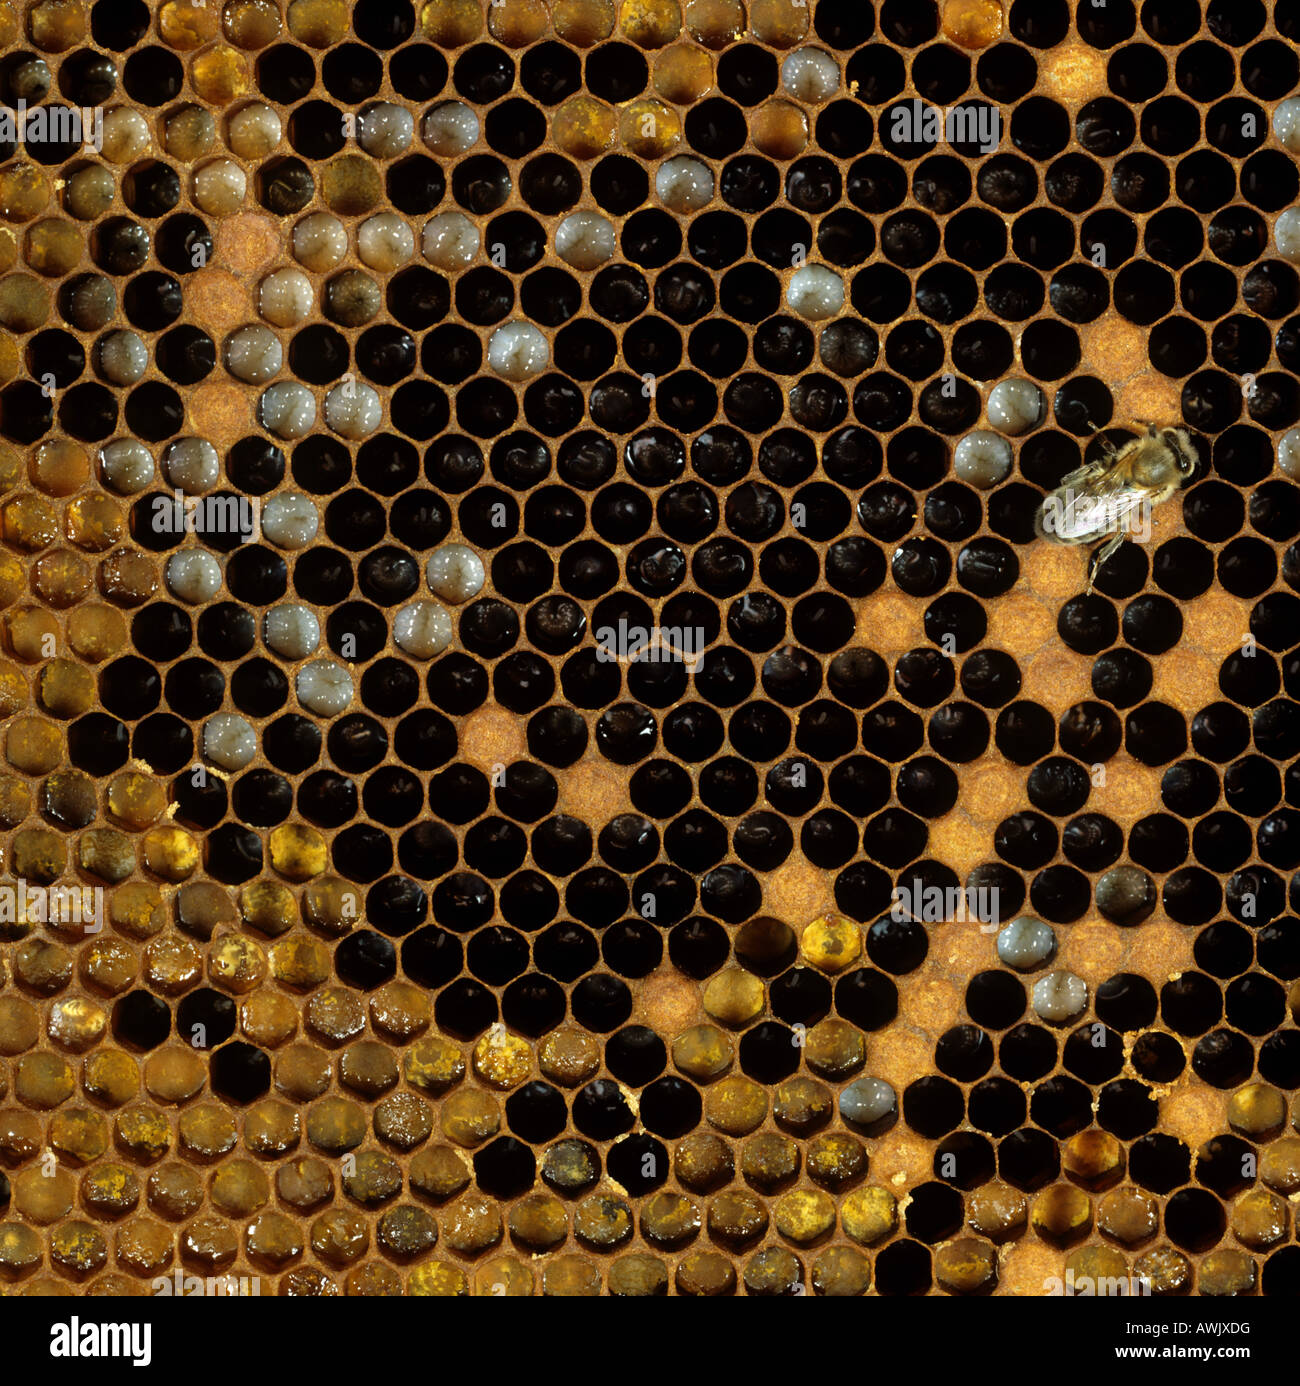 Honey Bee Apis mellifera hive worker and brood cells some capped - Stock Image